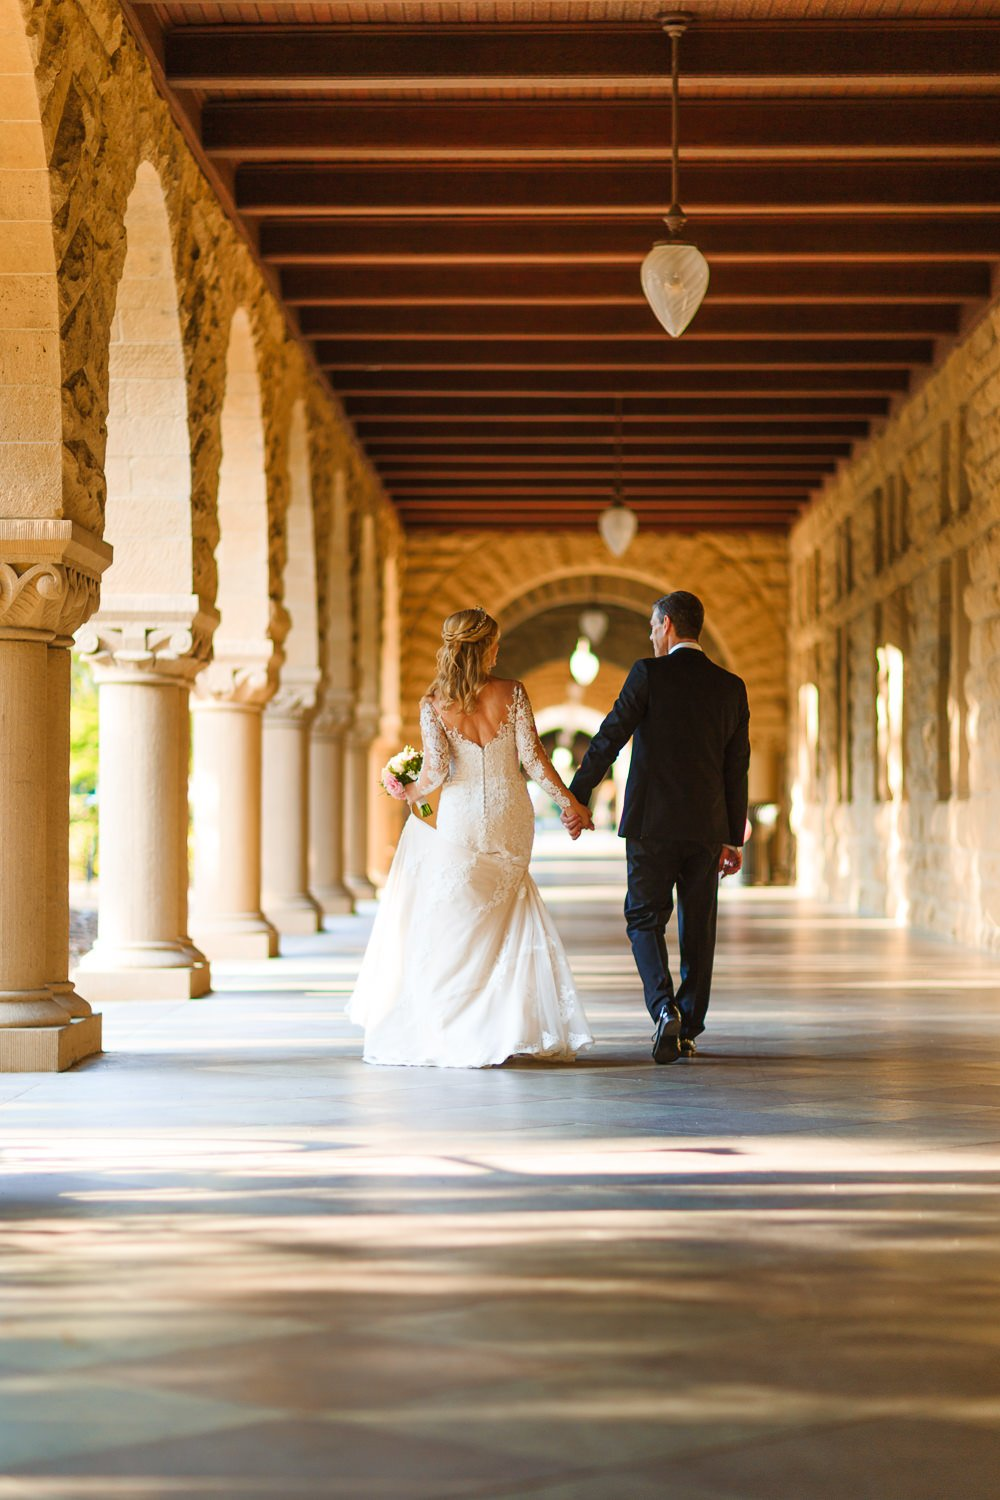 stanford-university-wedding-romantic-portraits-arpit-mehta-san-francisco-photographer-27